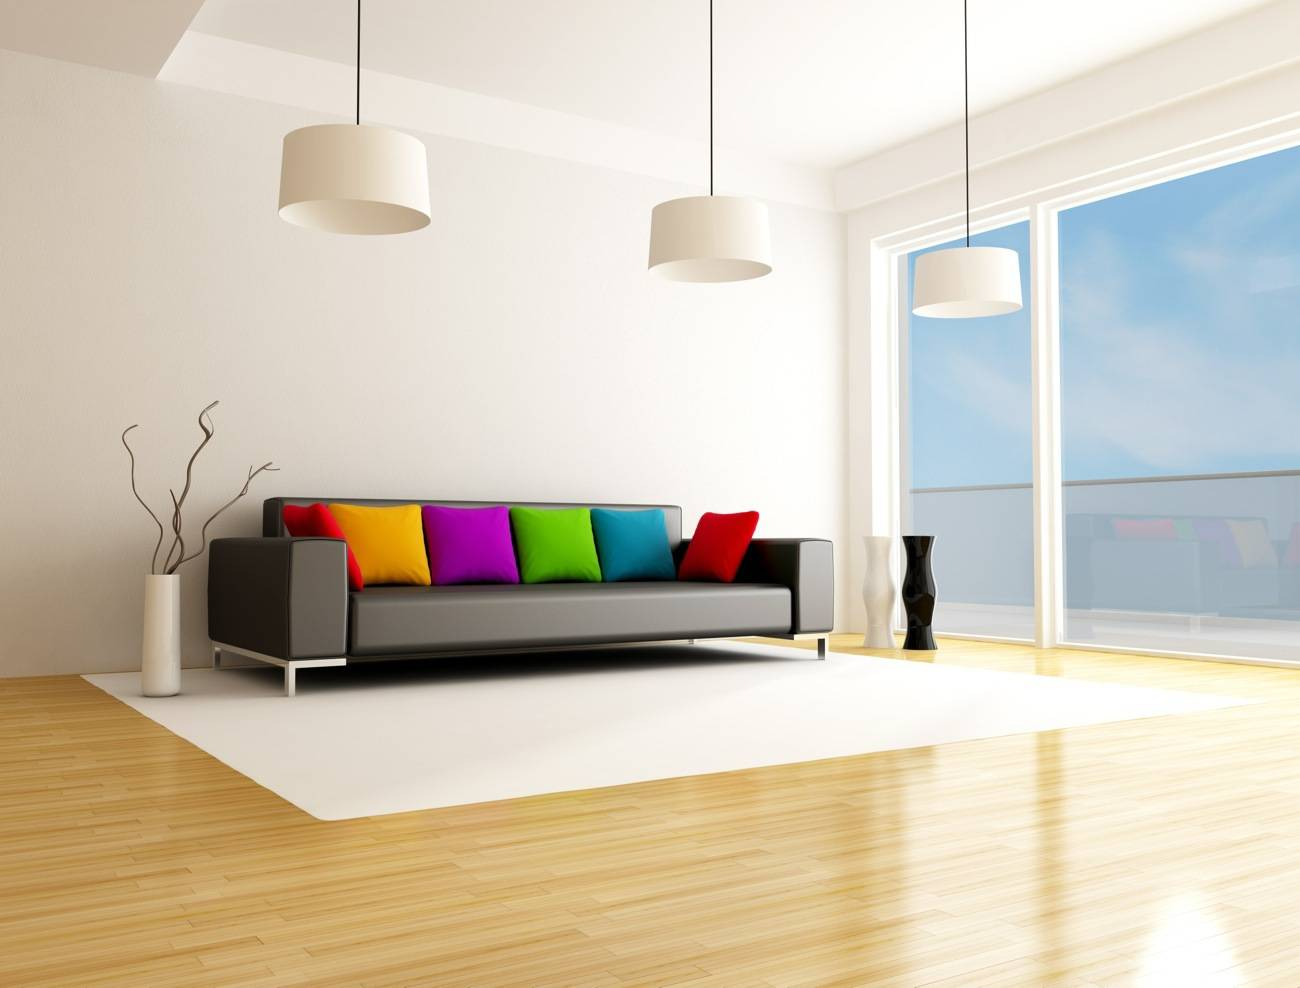 DECORACION - muebles minimalistas - dp.jpg